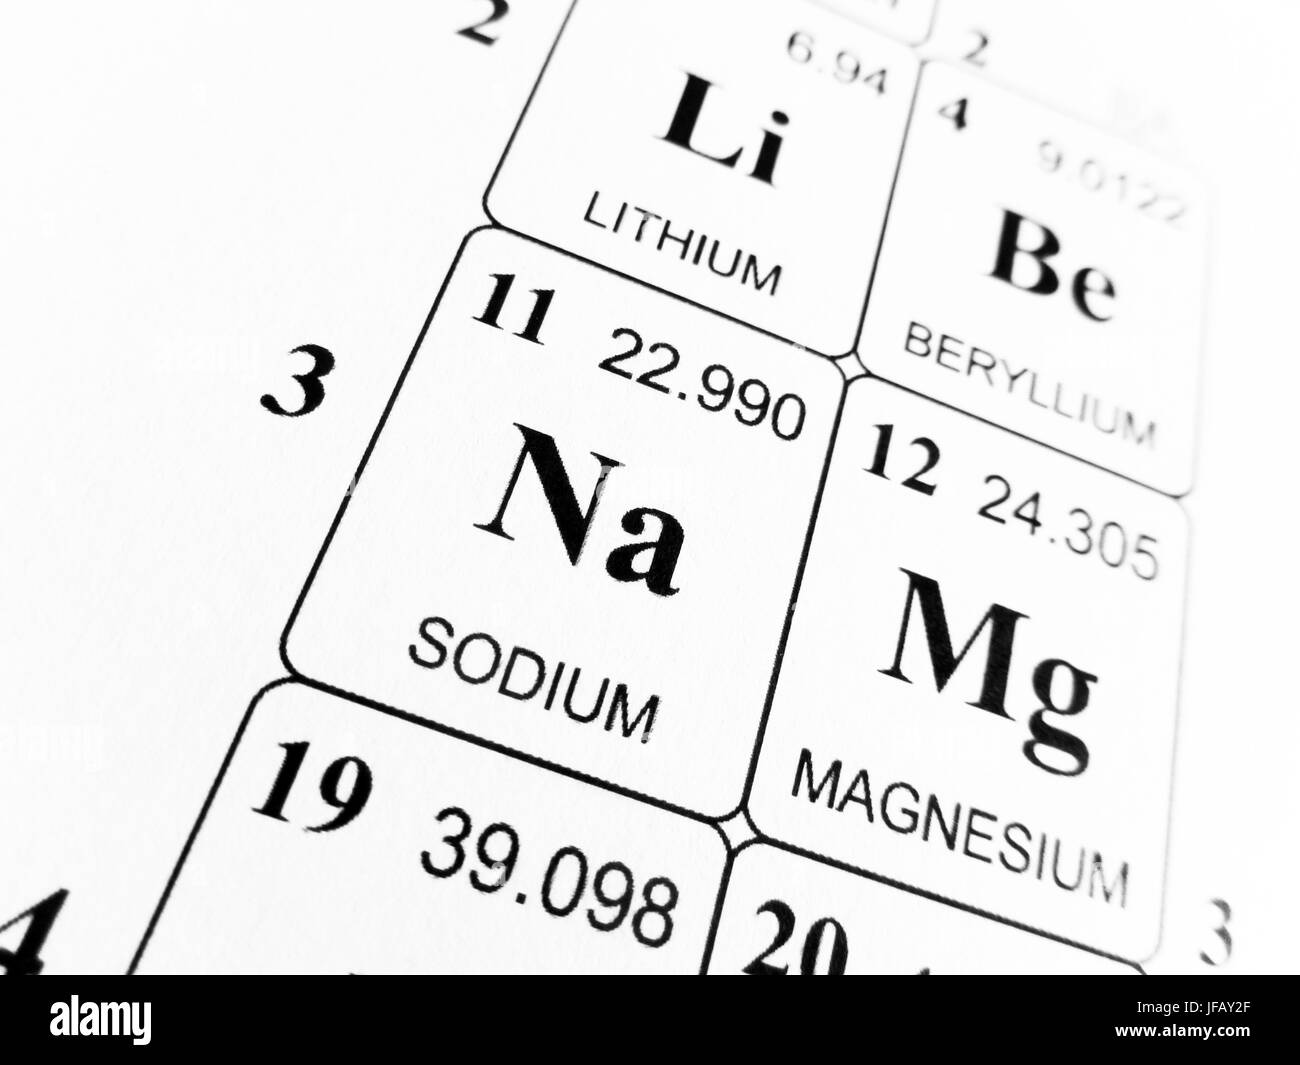 Sodium on the periodic table of the elements stock photo royalty sodium on the periodic table of the elements gamestrikefo Gallery